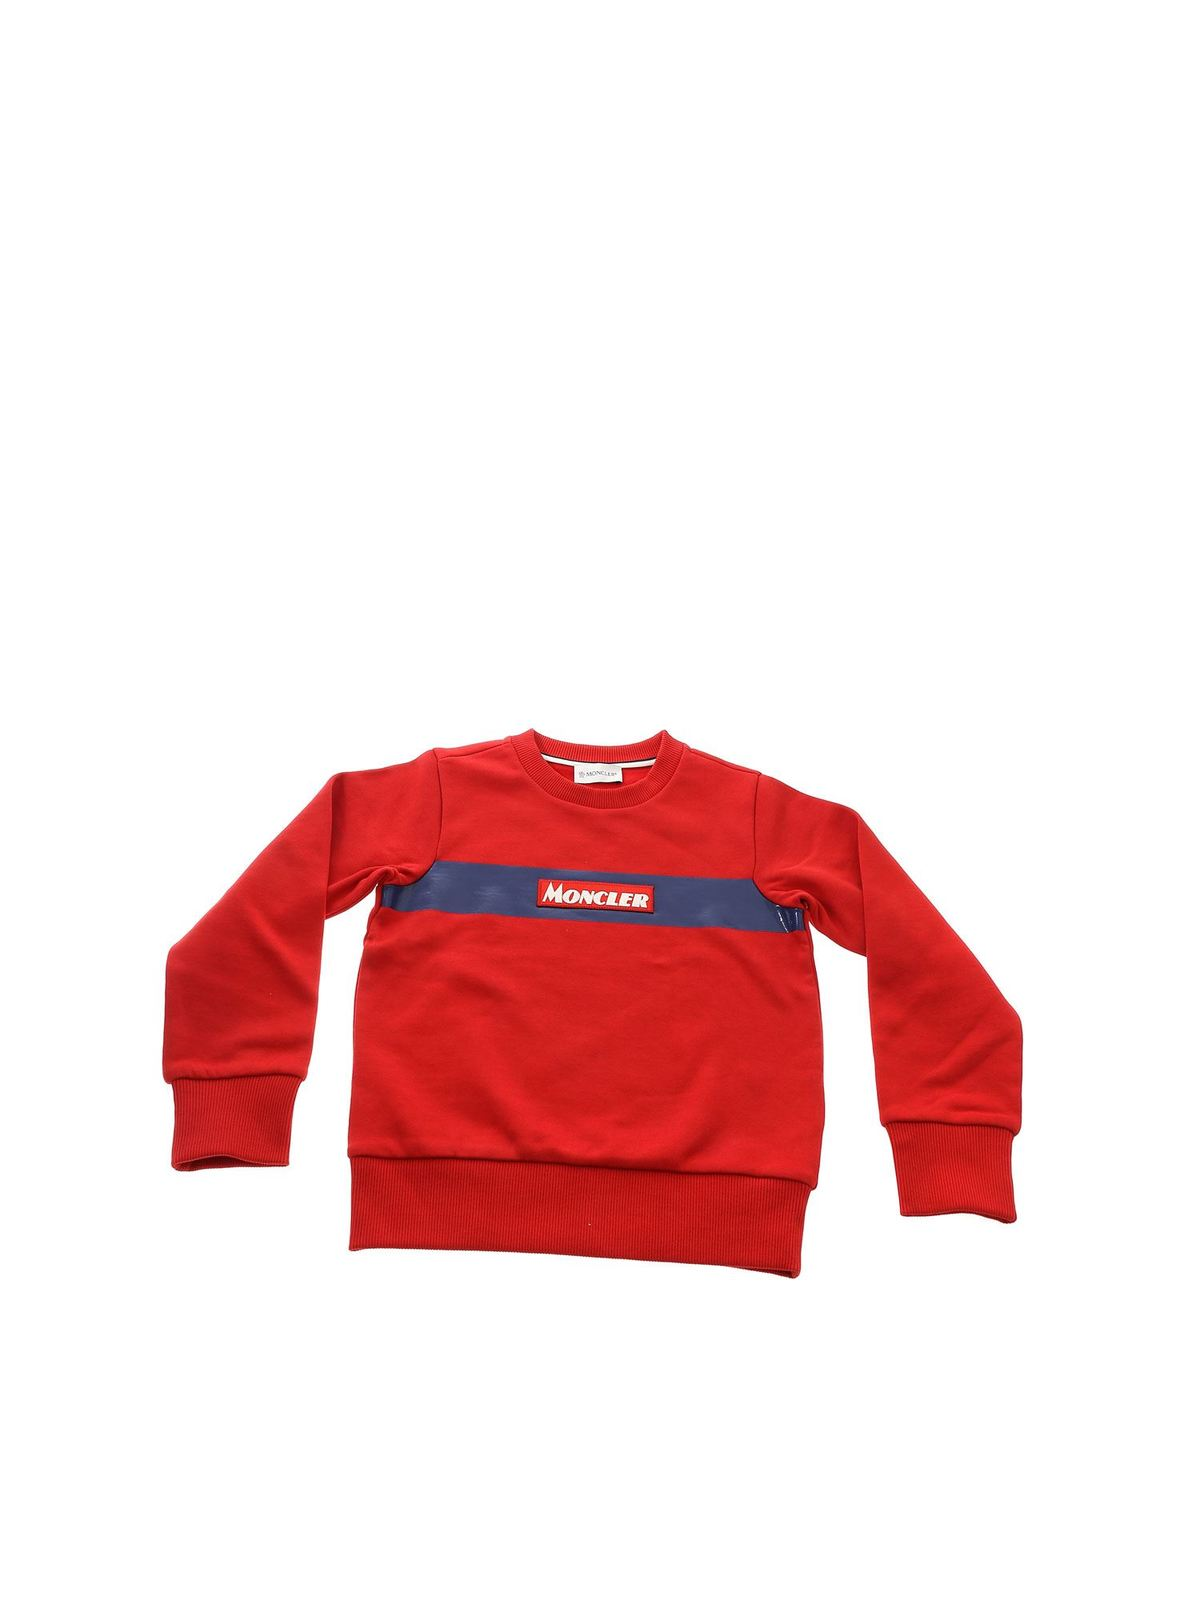 MONCLER JR RED SWEATSHIRT WITH LOGO PATCH